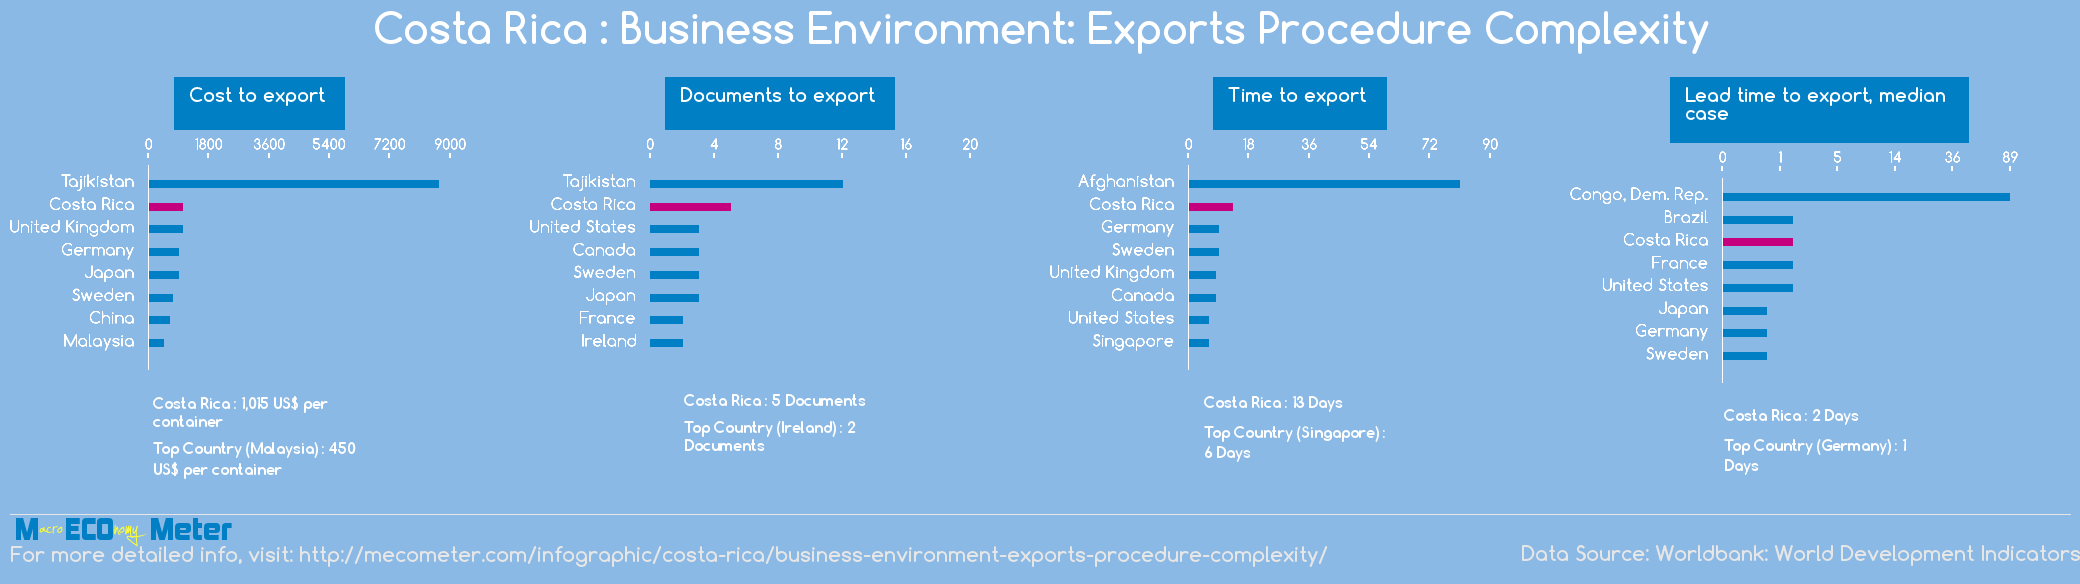 Costa Rica : Business Environment: Exports Procedure Complexity